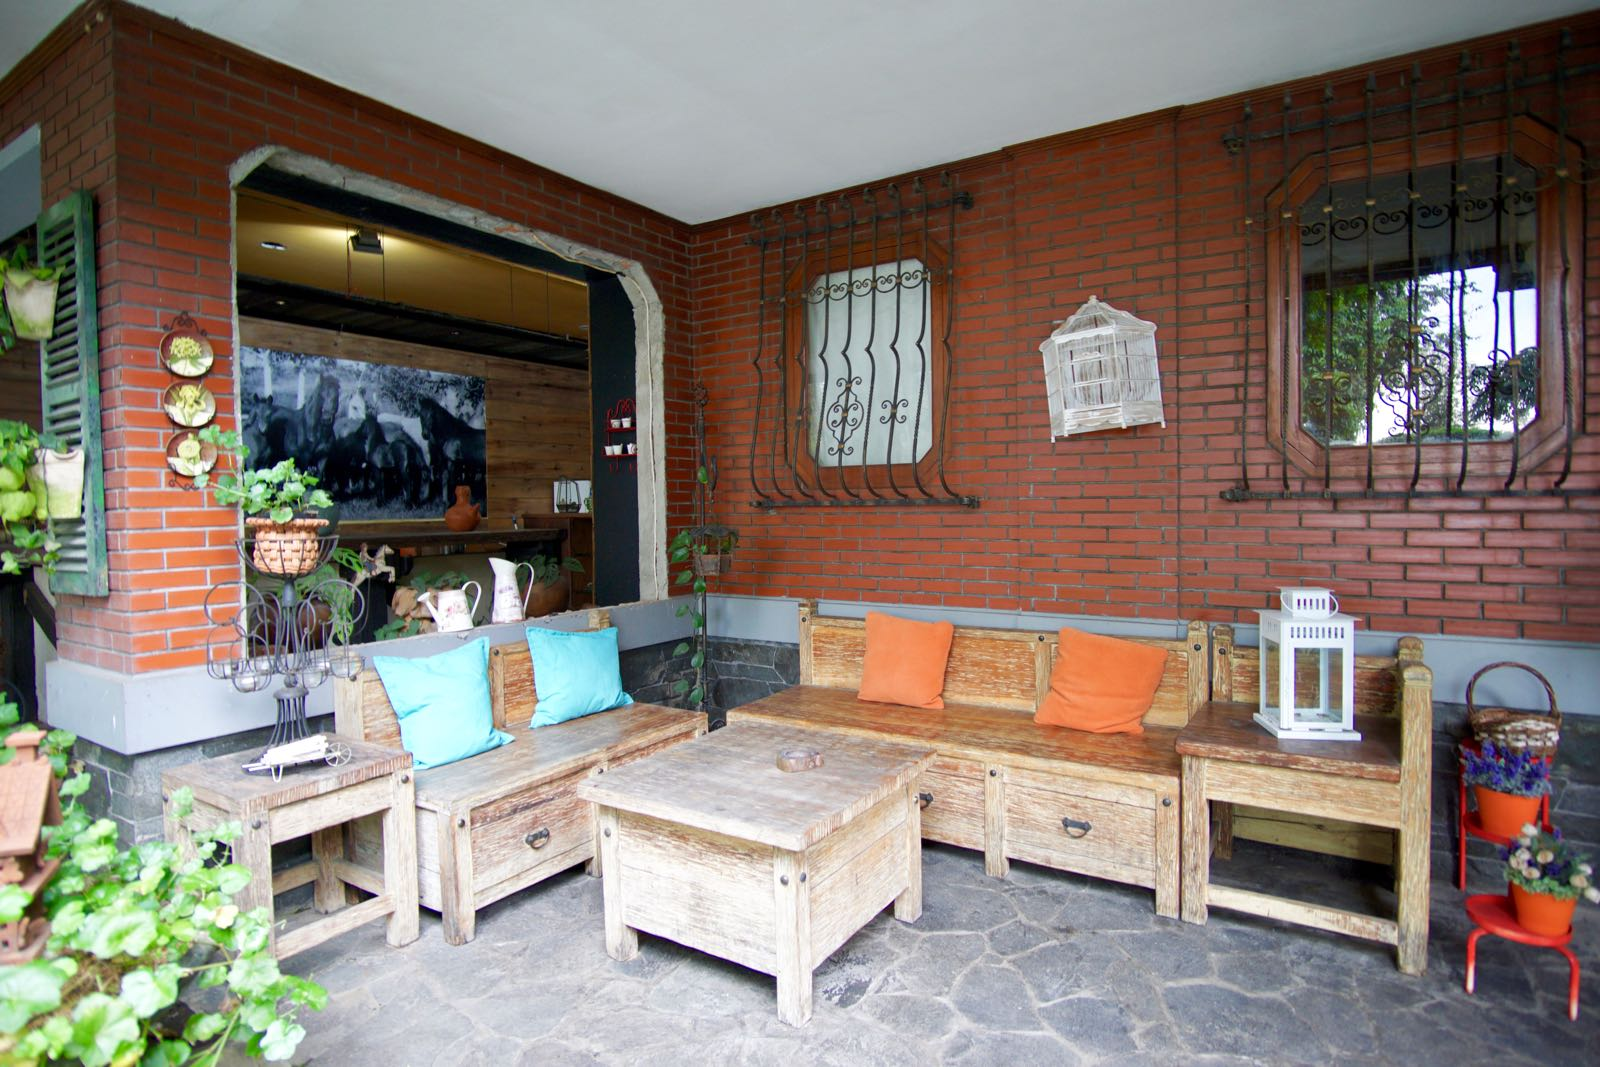 Cafe Savannah In Woodlands Di Lembang